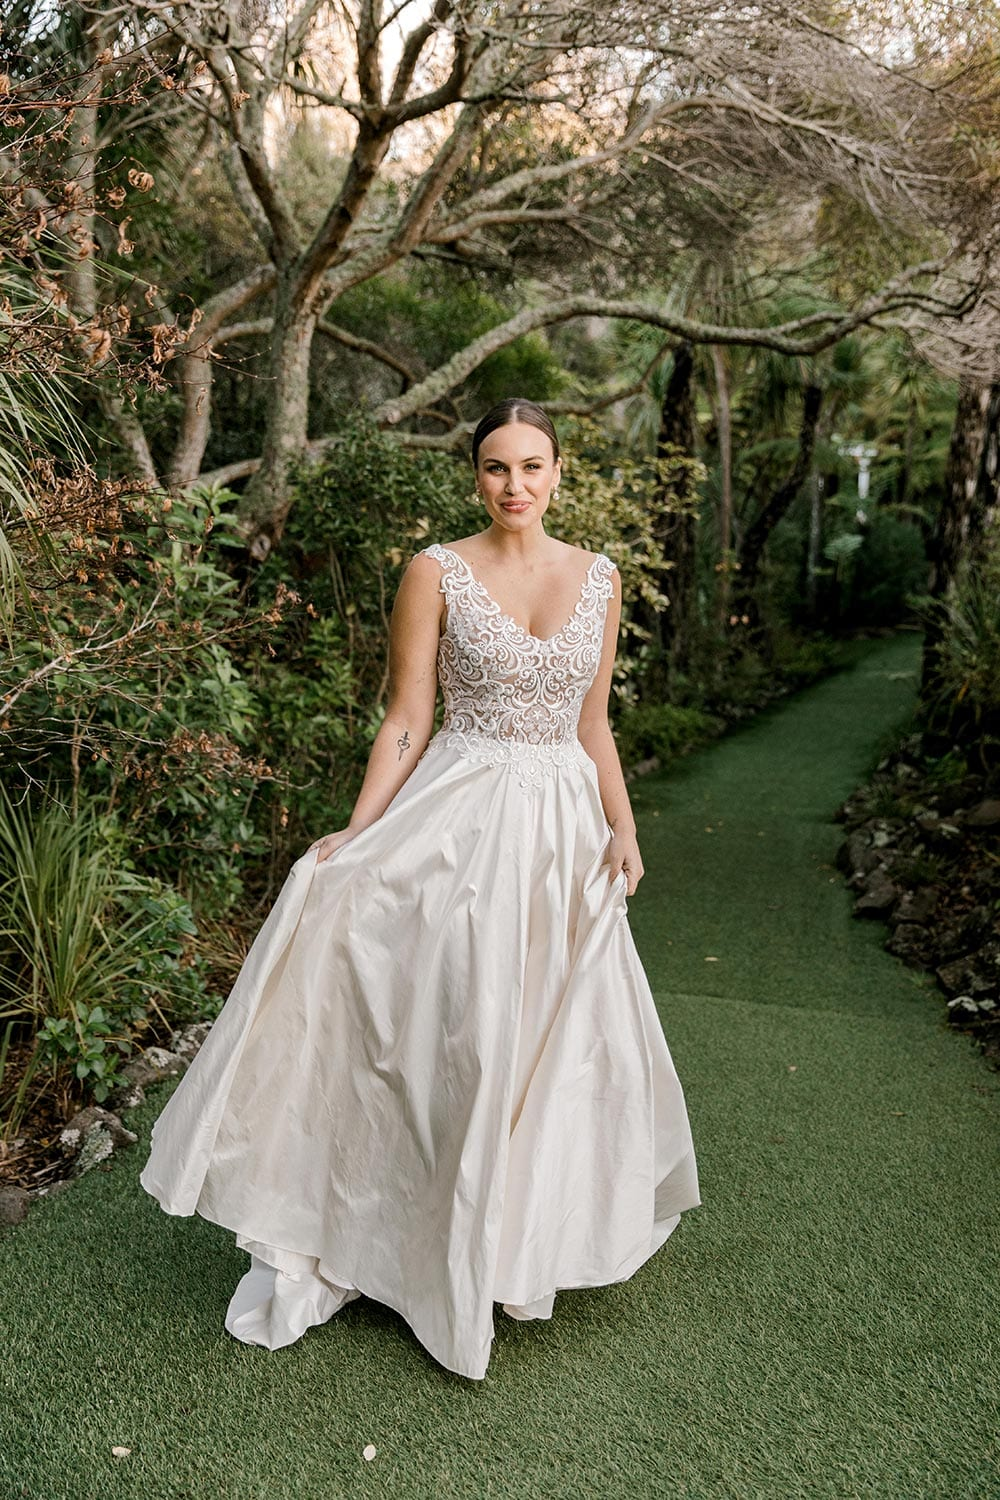 Ashleigh Wedding Dress from Vinka Design. Wedding dress with semi-sheer, richly embroidered fitted bodice on a nude base adorned with guipure lace. Dramatic silk dupion full skirt with side pockets. Full length dress portrait with skirt held, photographed at Tui Hills by Emmaline Photography.